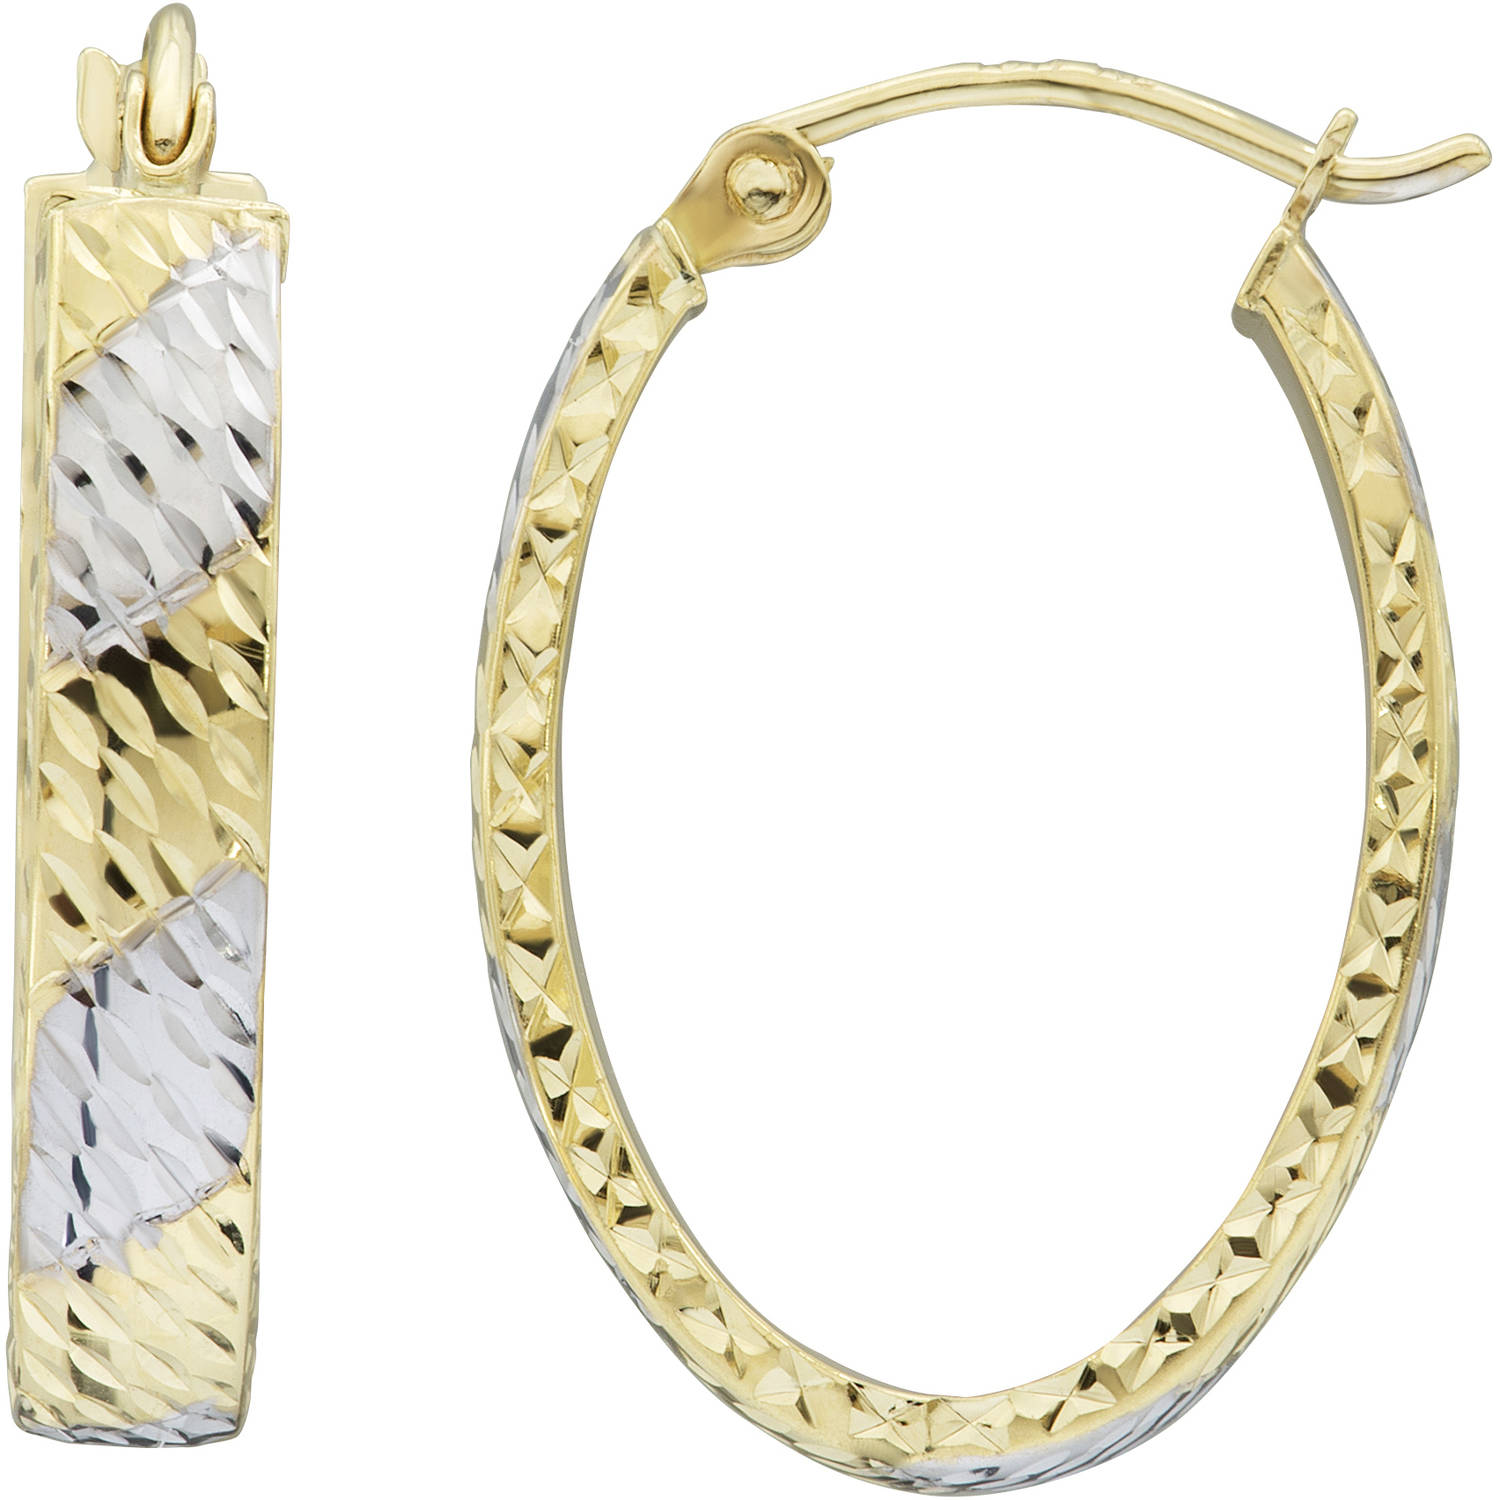 Simply Gold 10kt Yellow Gold with White Rhodium Diamond-Cut Flat Hoop Earrings